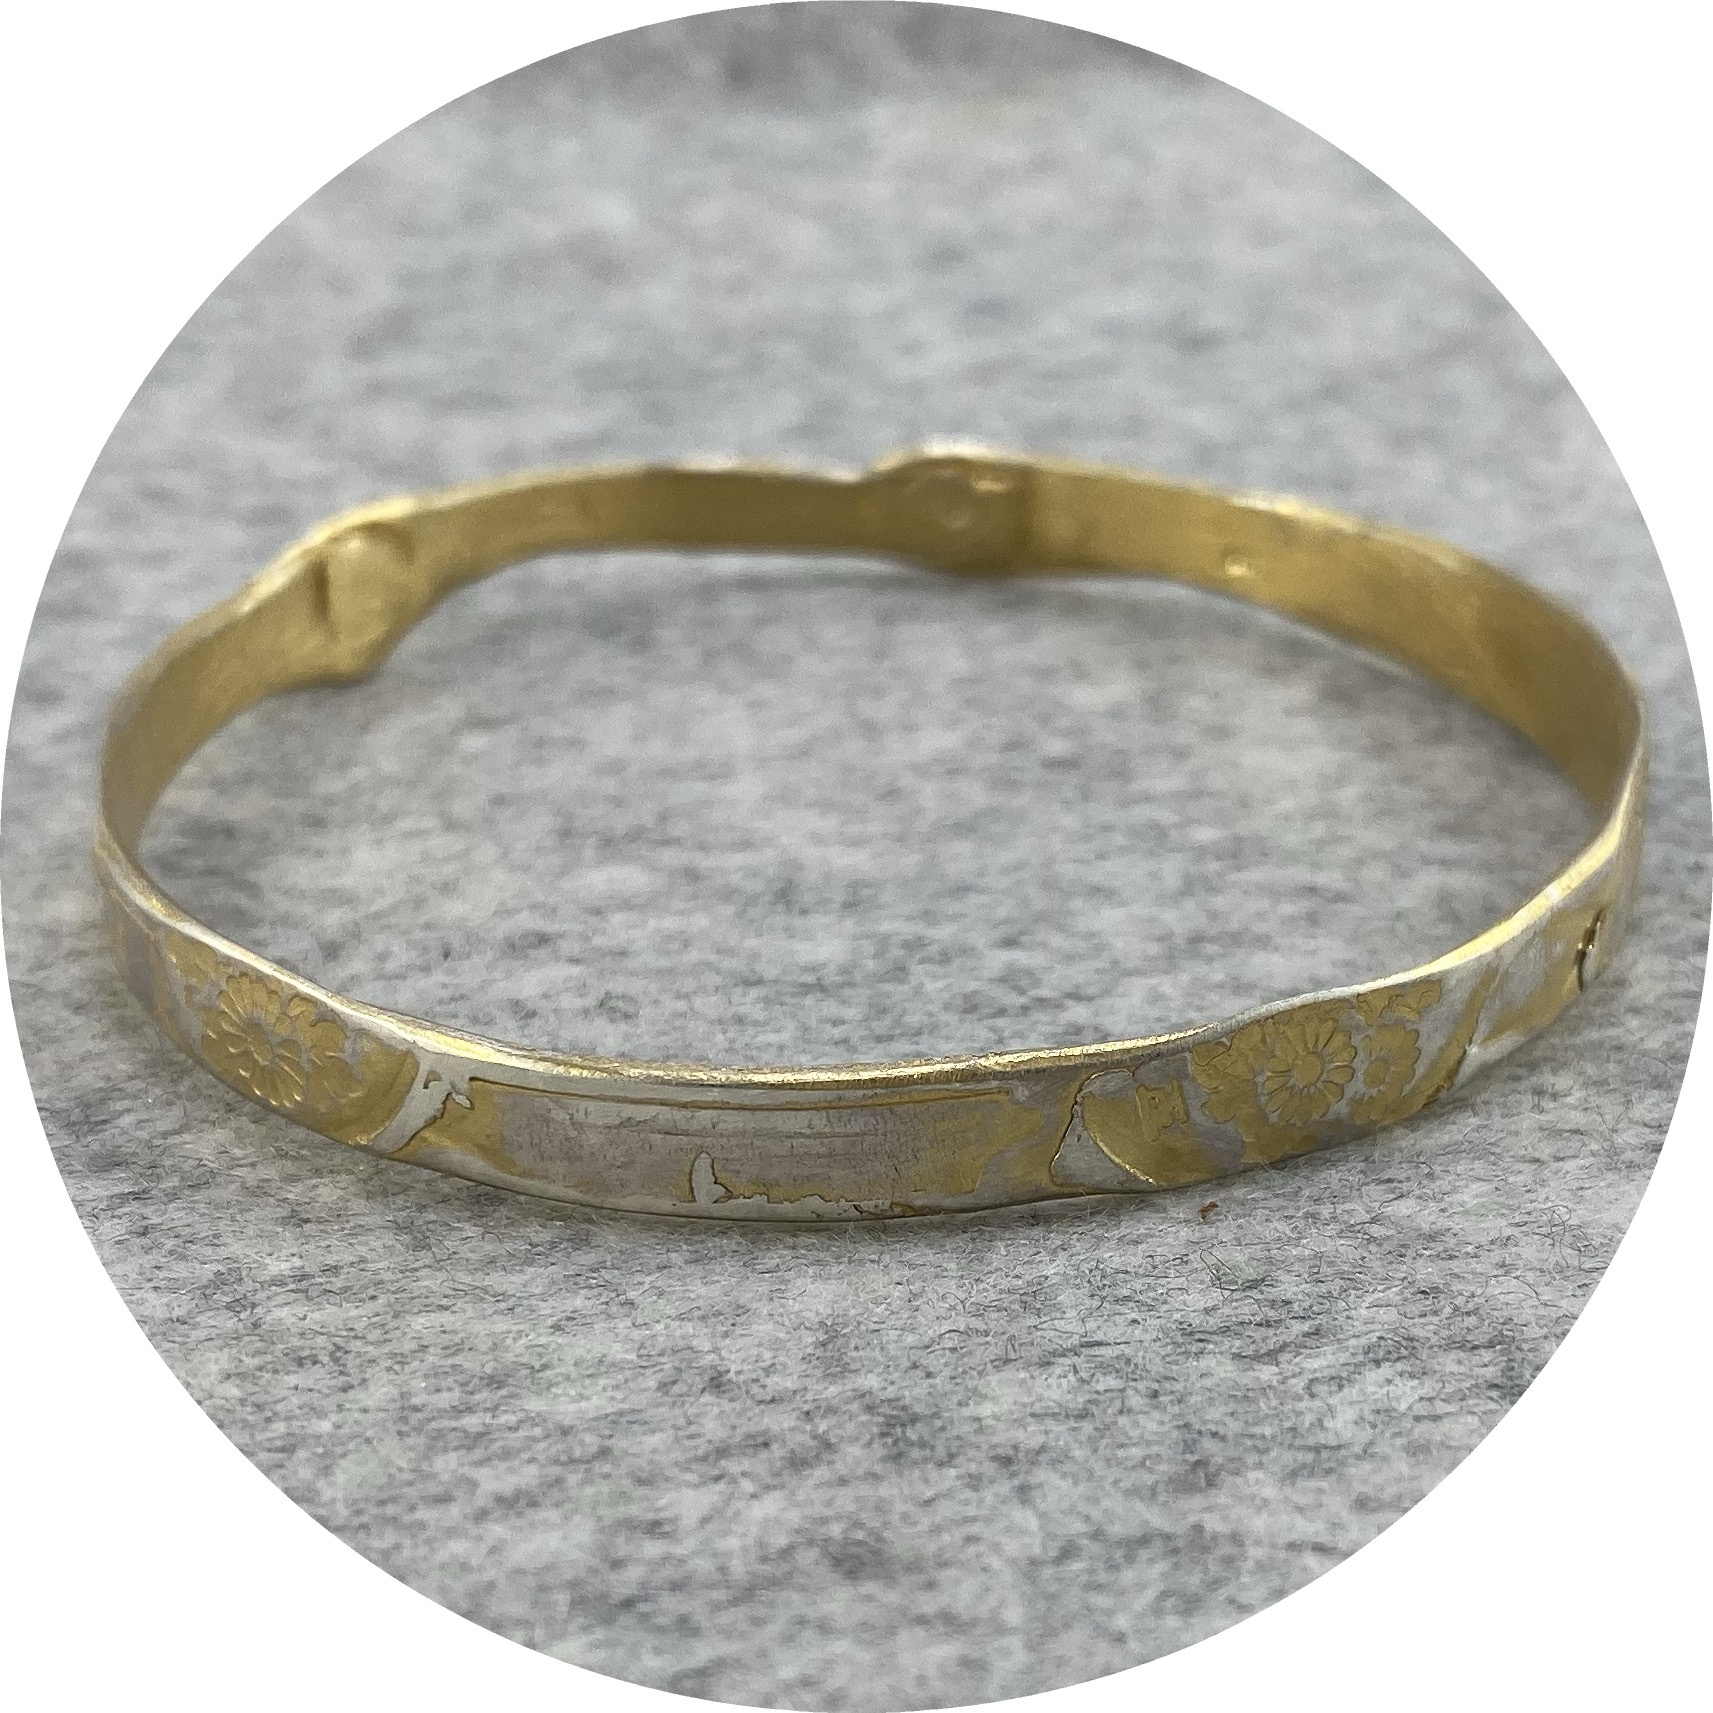 Claire Taylor - 'Yellow Flower Bangle', 925 silver, yellow gold plate